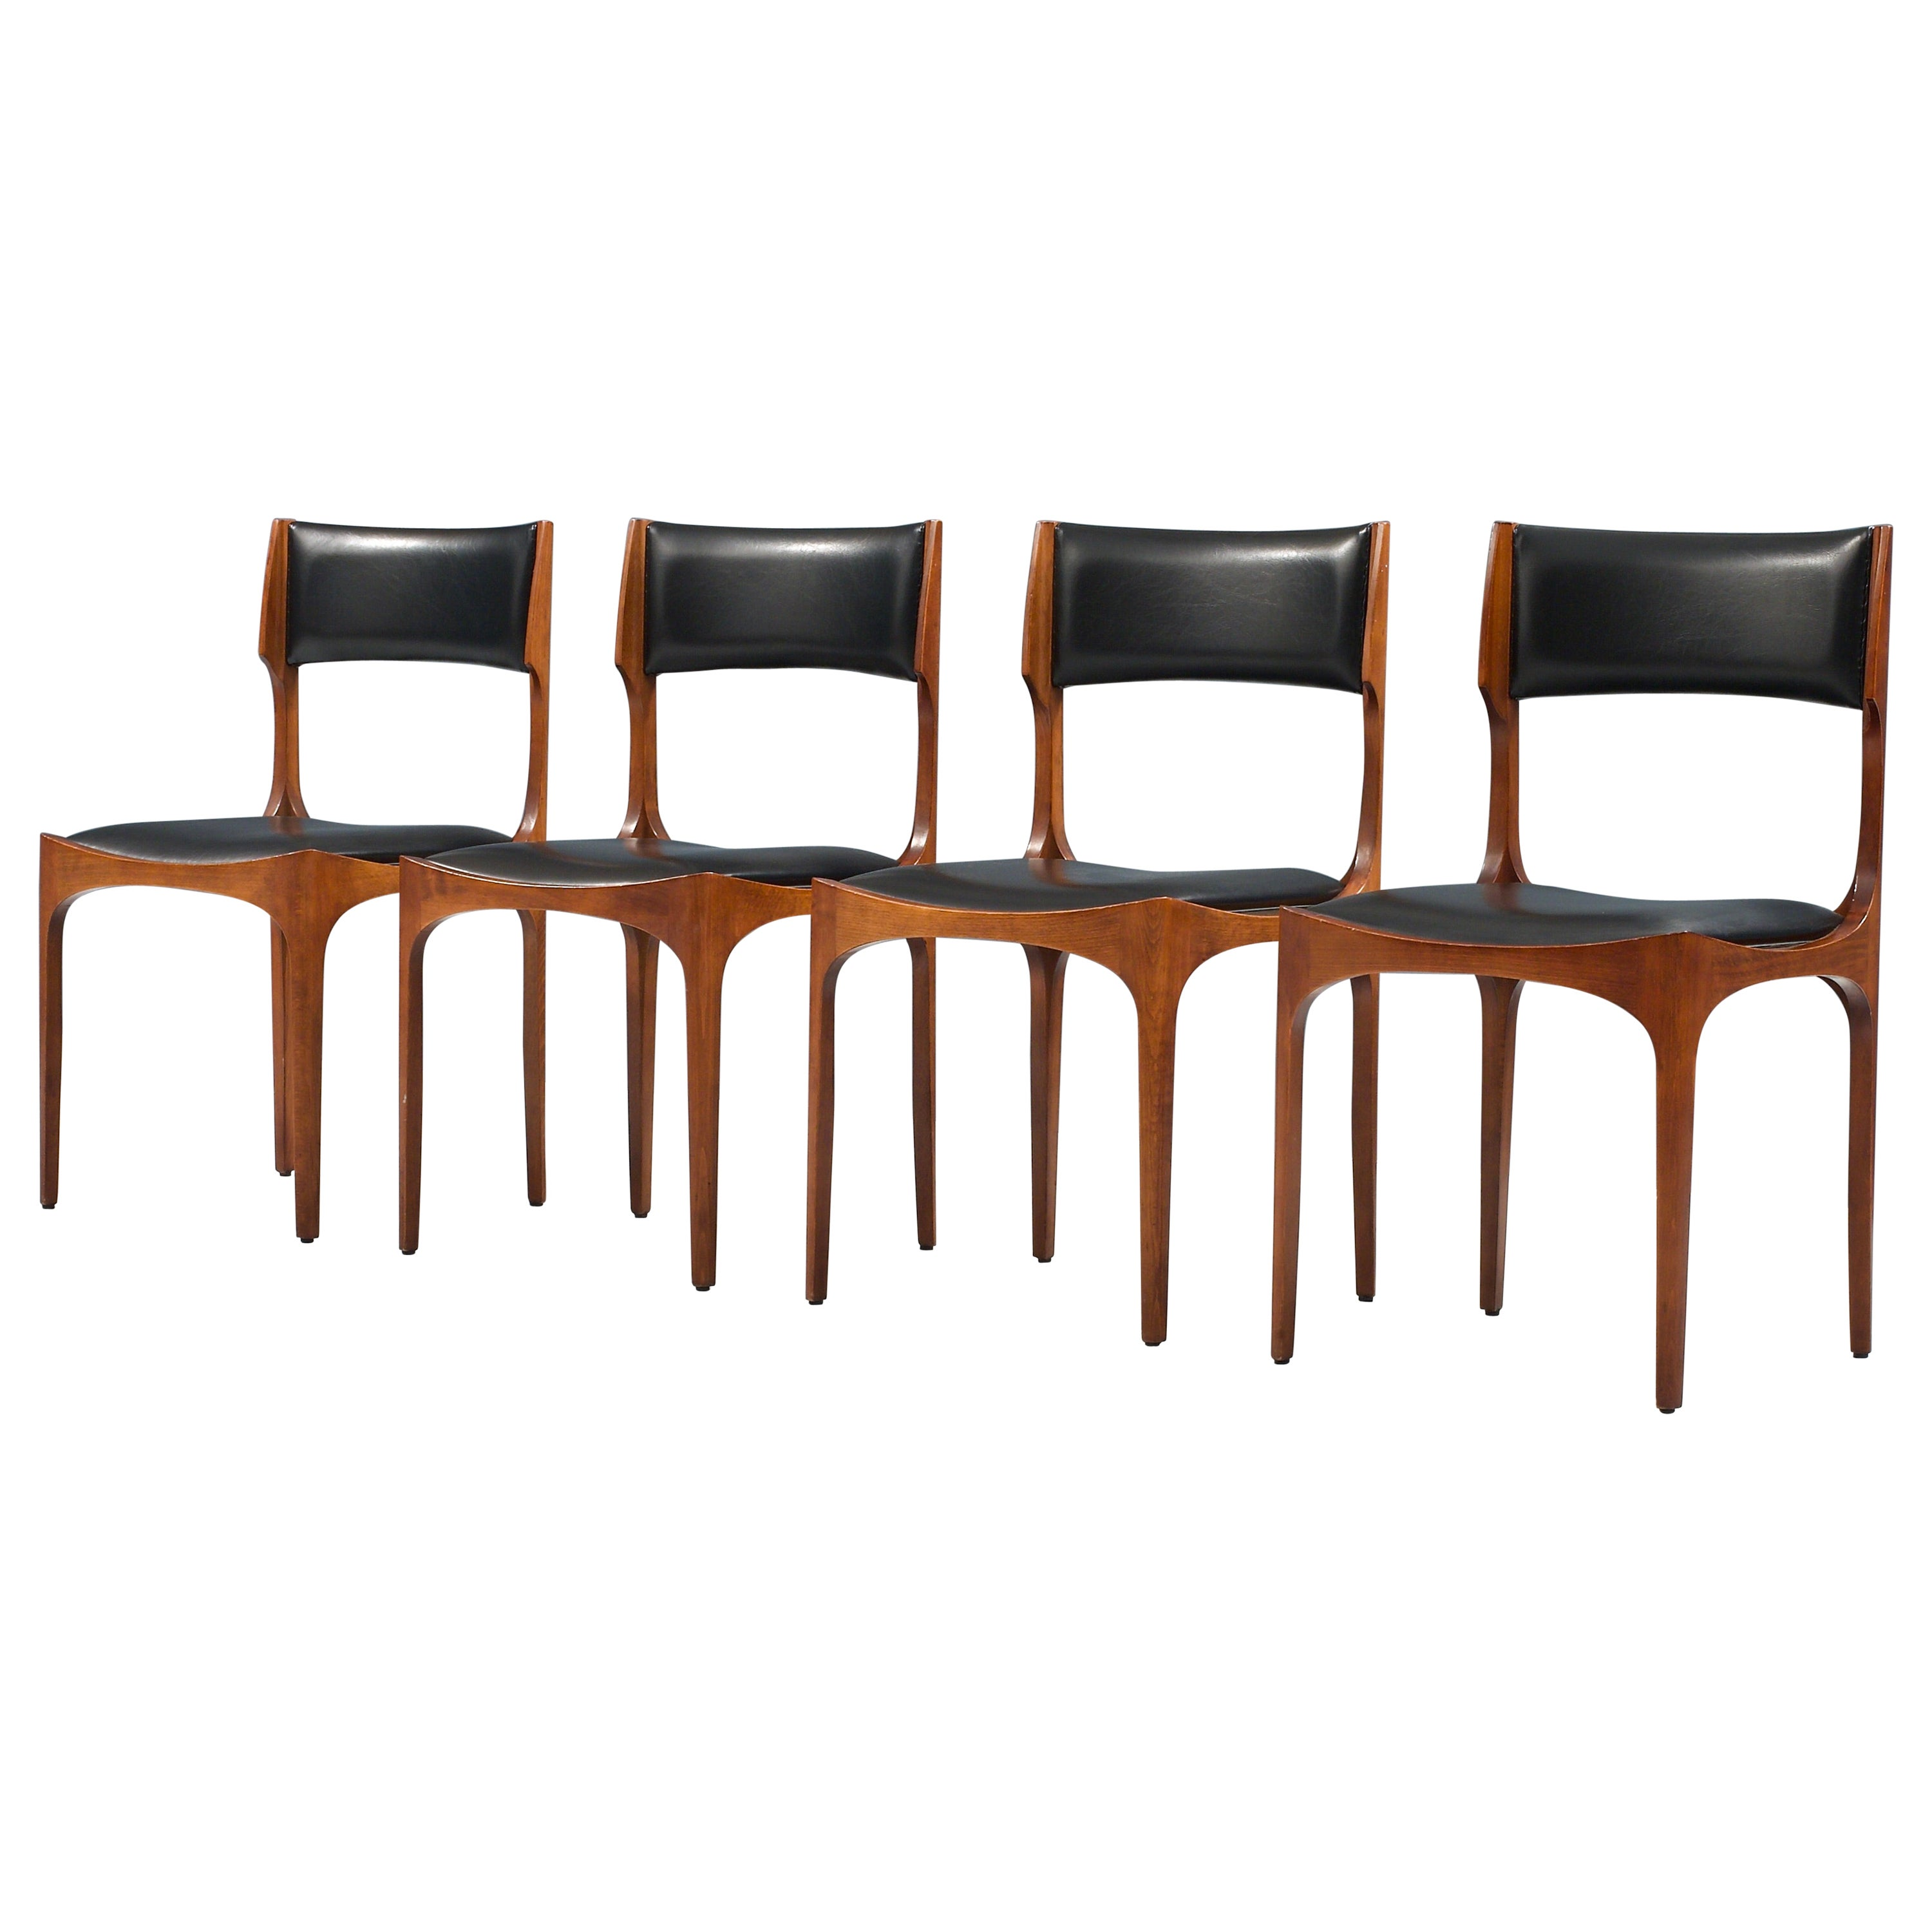 Set of Four Dining Chairs in Oak and Faux Leather by Giuseppe Gibelli, 1962